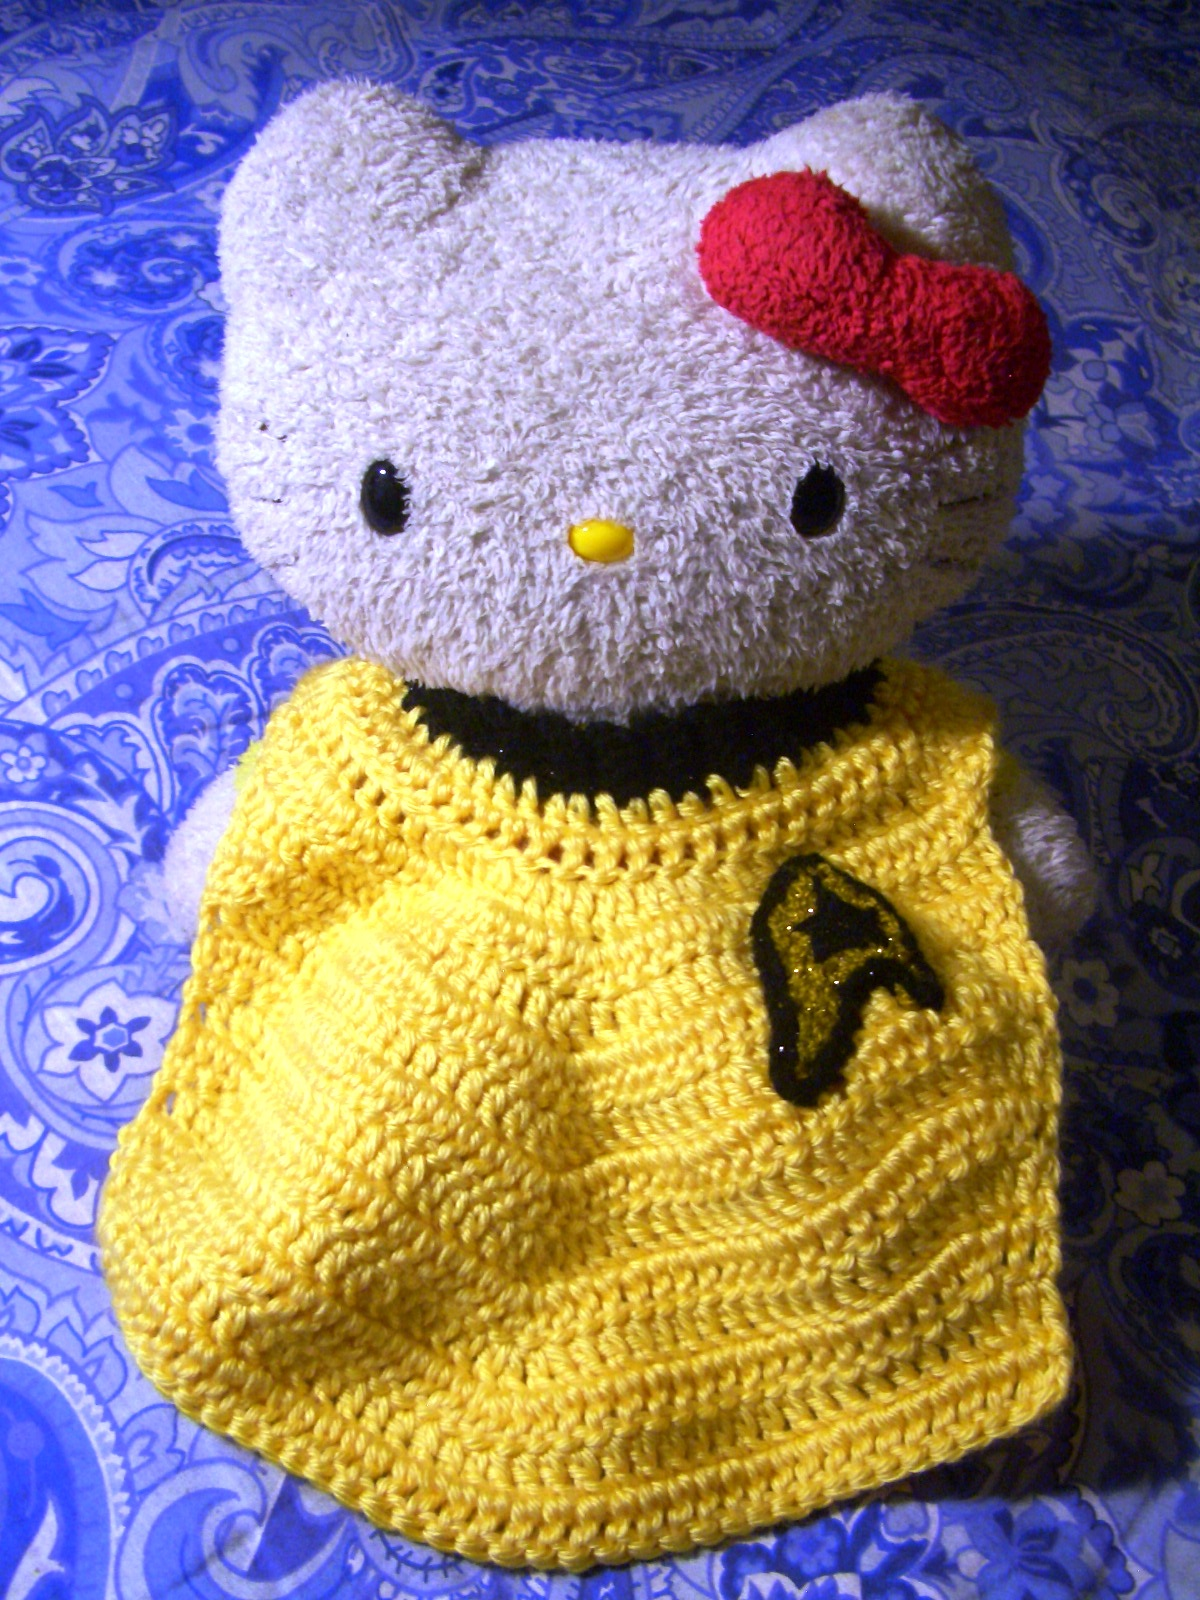 Red Shirt Moon Bun - Amigurumi Star Trek Bunny Rabbit, via Etsy ... | 1600x1200